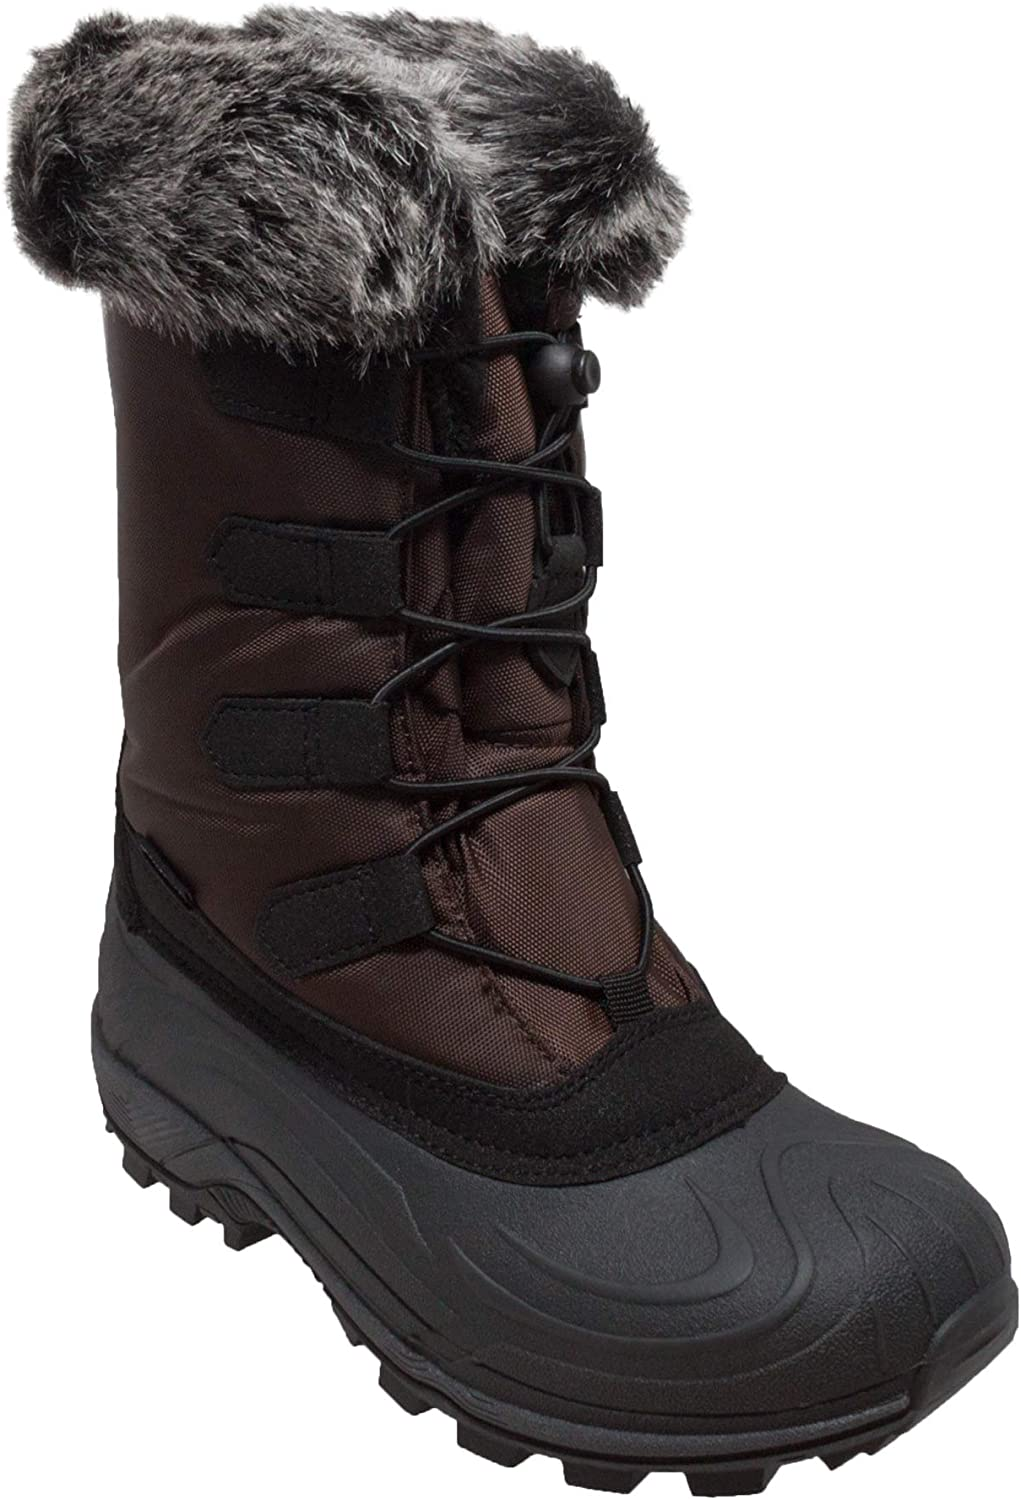 16 Best Women's Snow Boots: Warm & Waterproof (2018) |